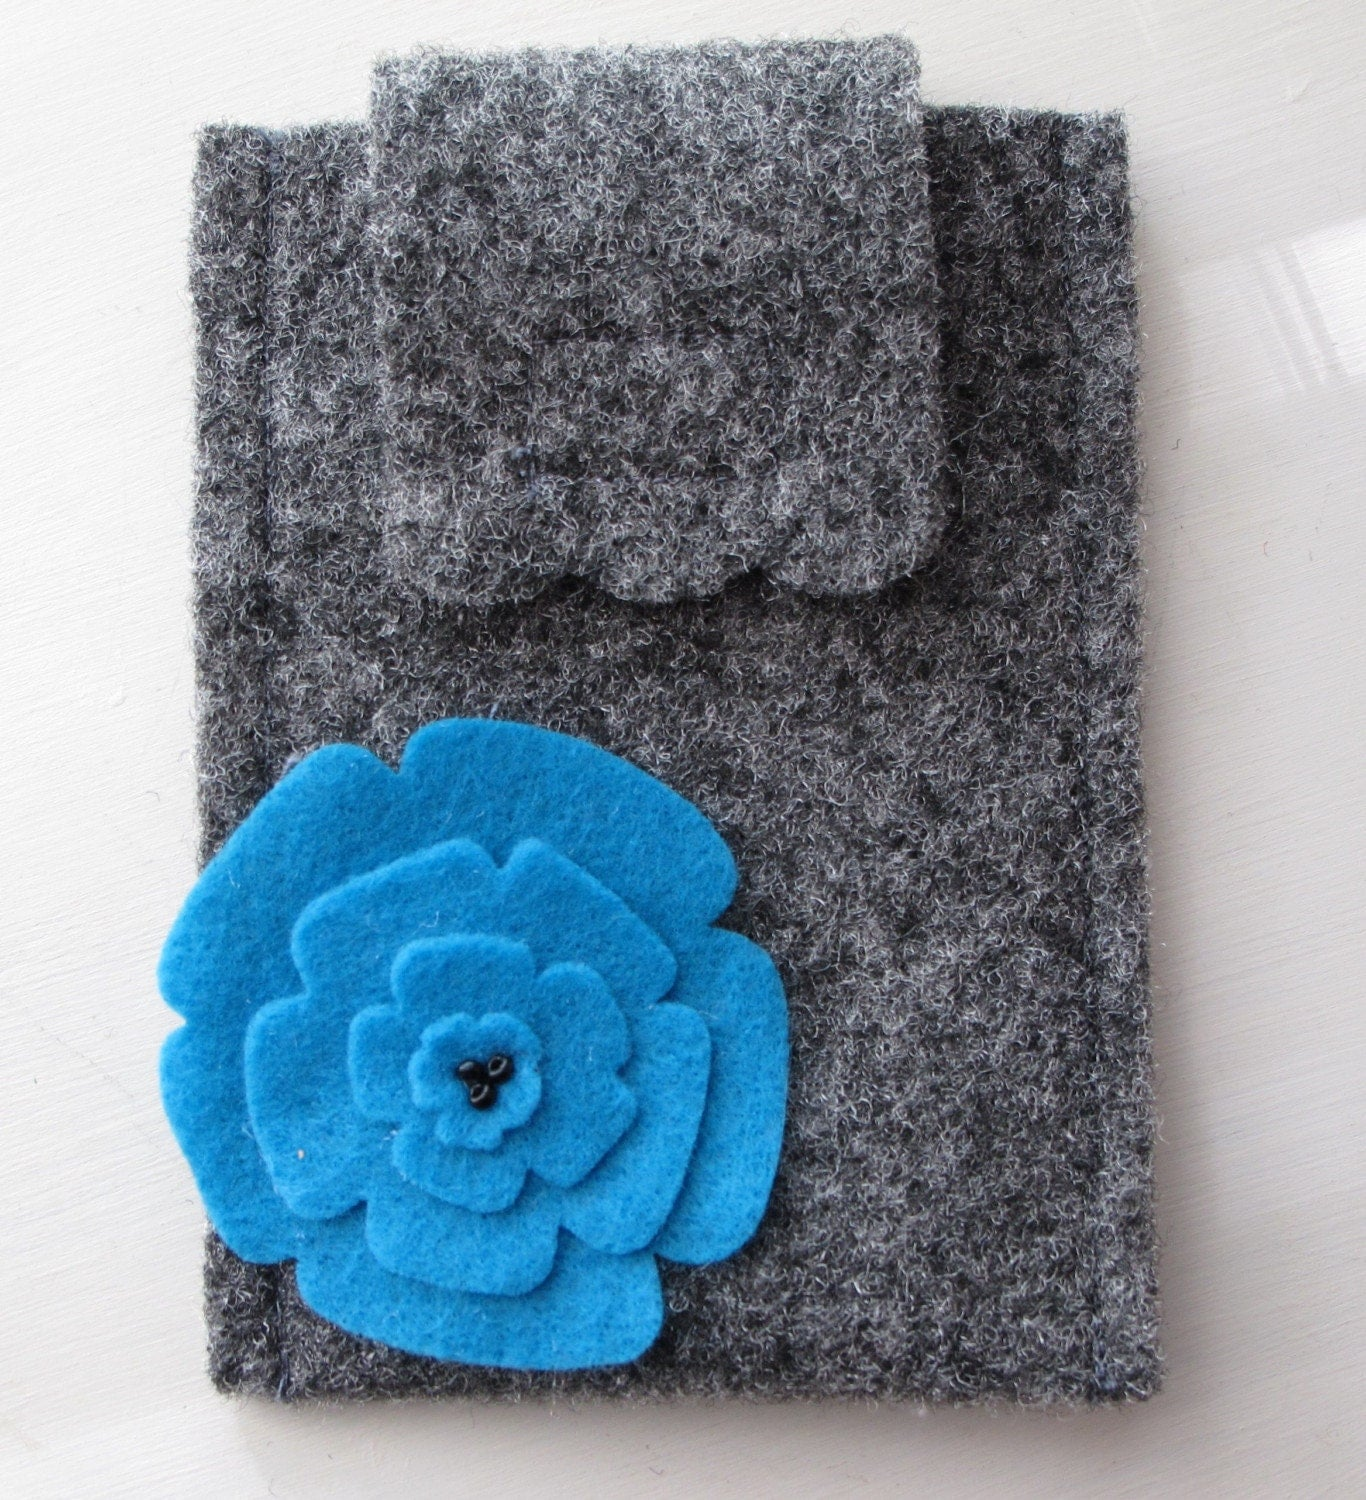 Grey Felt IPhone Cell Phone Camera Gadget Case with Turquoise Felt Flower